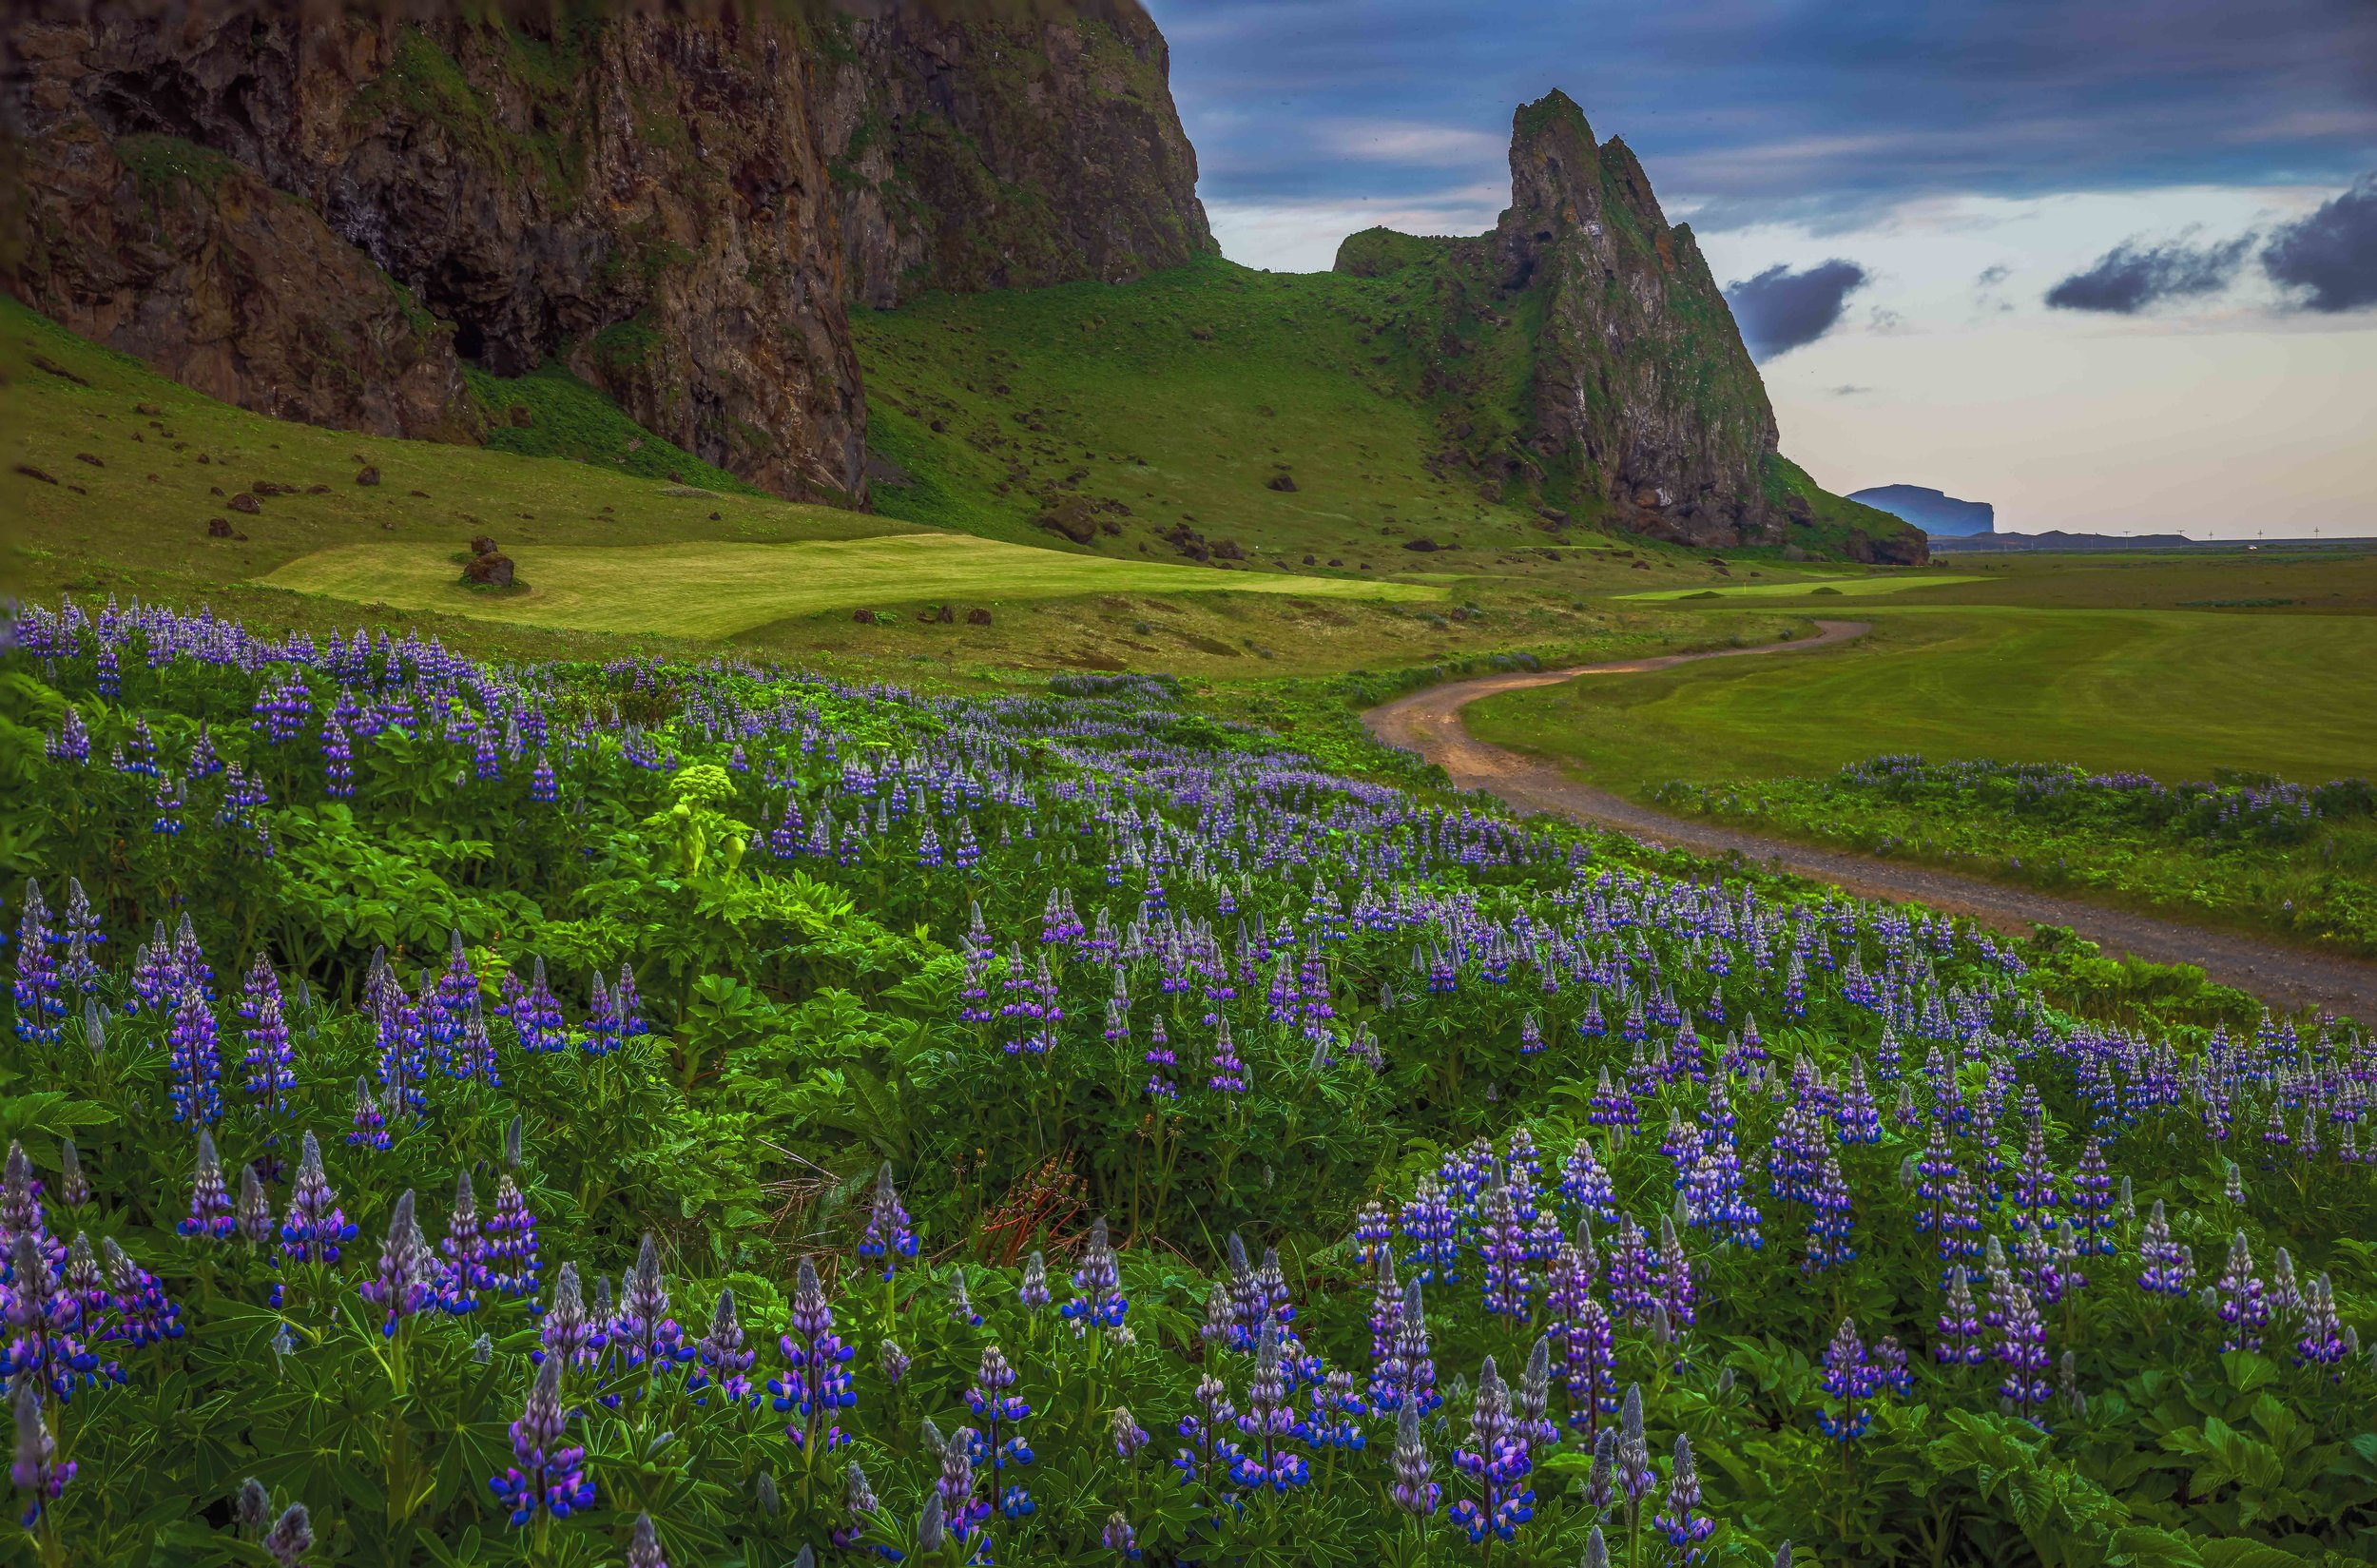 Lupine are a very common flower in Iceland during the month of June